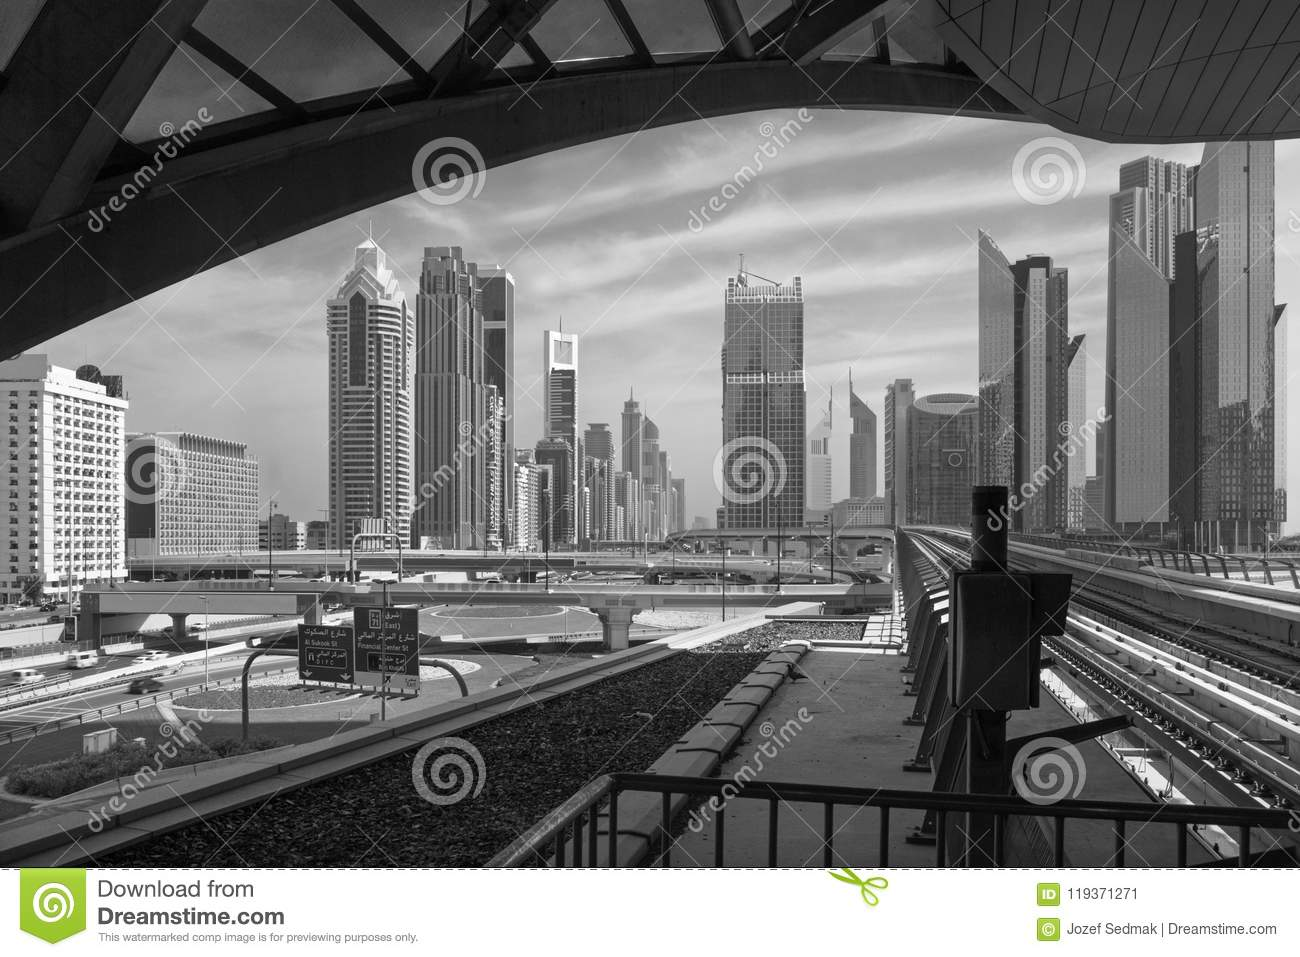 Dubai - The skyscrapers of downtown and the rails of metro